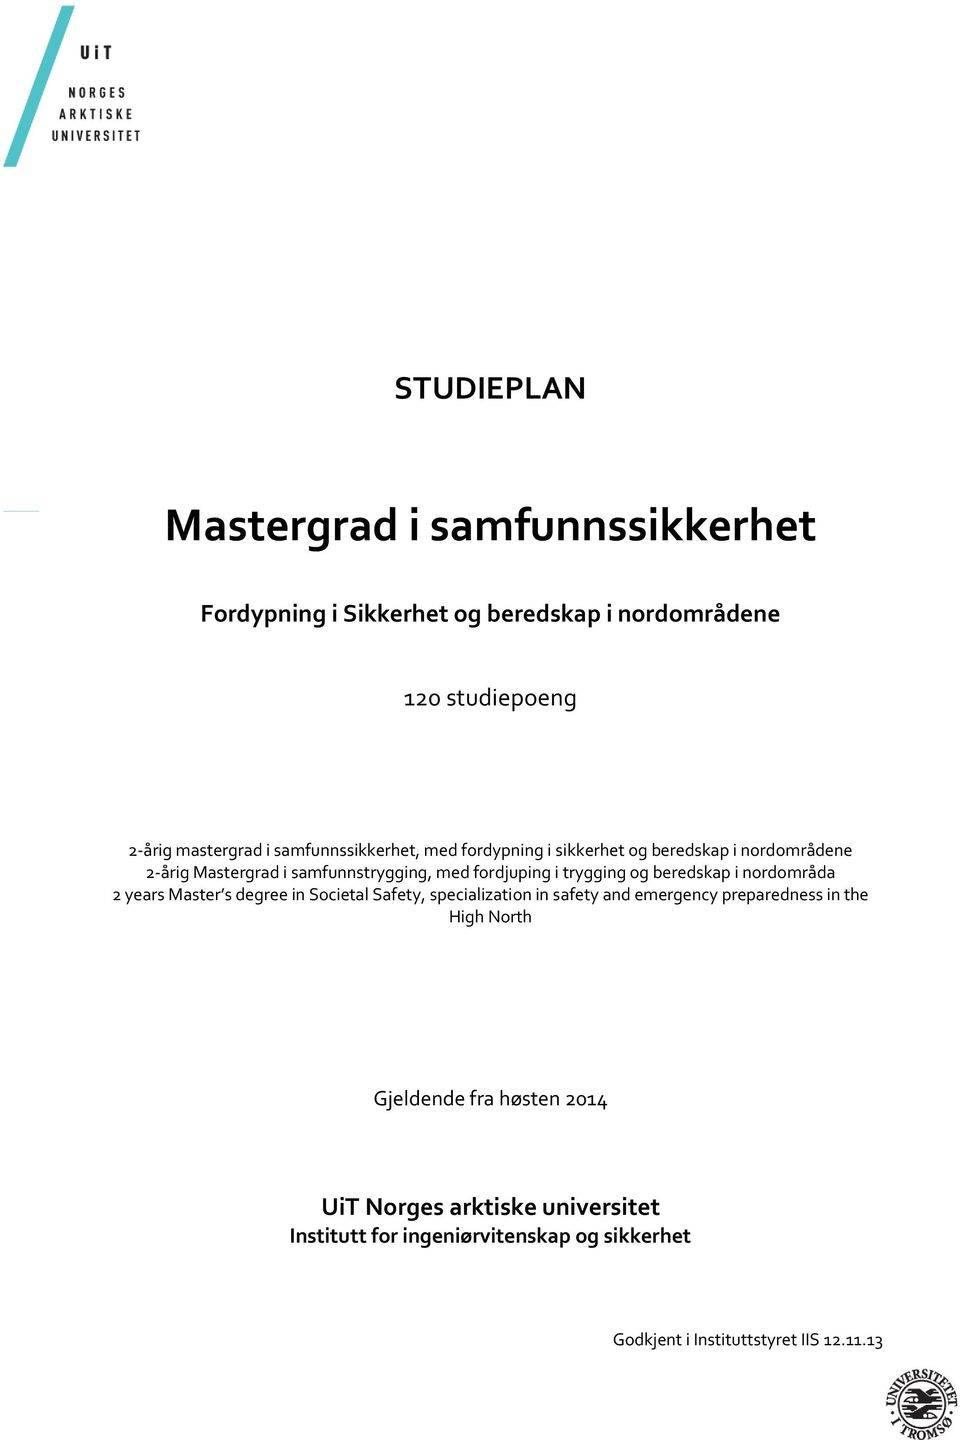 og beredskap i nordområda 2 years Master s degree in Societal Safety, specialization in safety and emergency preparedness in the High